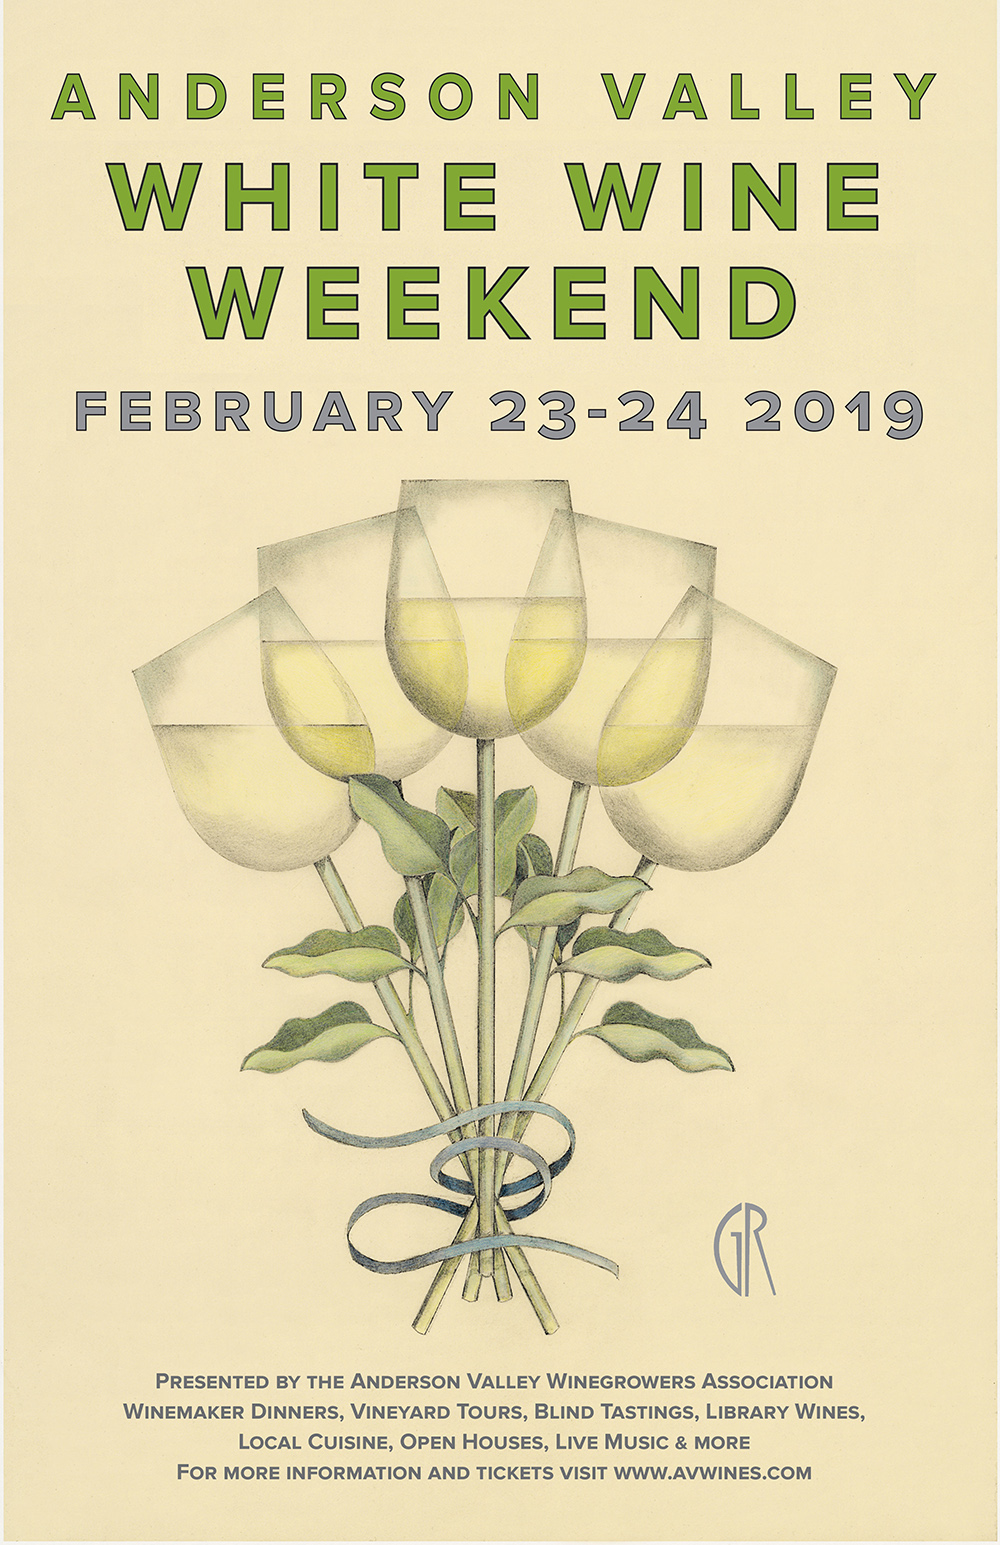 A beautiful time of year to visit wine country. - This winter, Anderson Valley will host a Winter White Wine Weekend, a combination of the events you know and have come to love. Come celebrate our famed Alsace-style varietals like Gewürztraminer, Pinot Gris, and Riesling, in addition to our award-winning Chardonnay grapes that make the sparkling wines from this region truly shine. Reserve a winemaker dinner and visit Open Houses all weekend.PLEASE NOTE: We are not holding a Grand Tasting or Educational Sessions in 2019. These events will return in 2020.